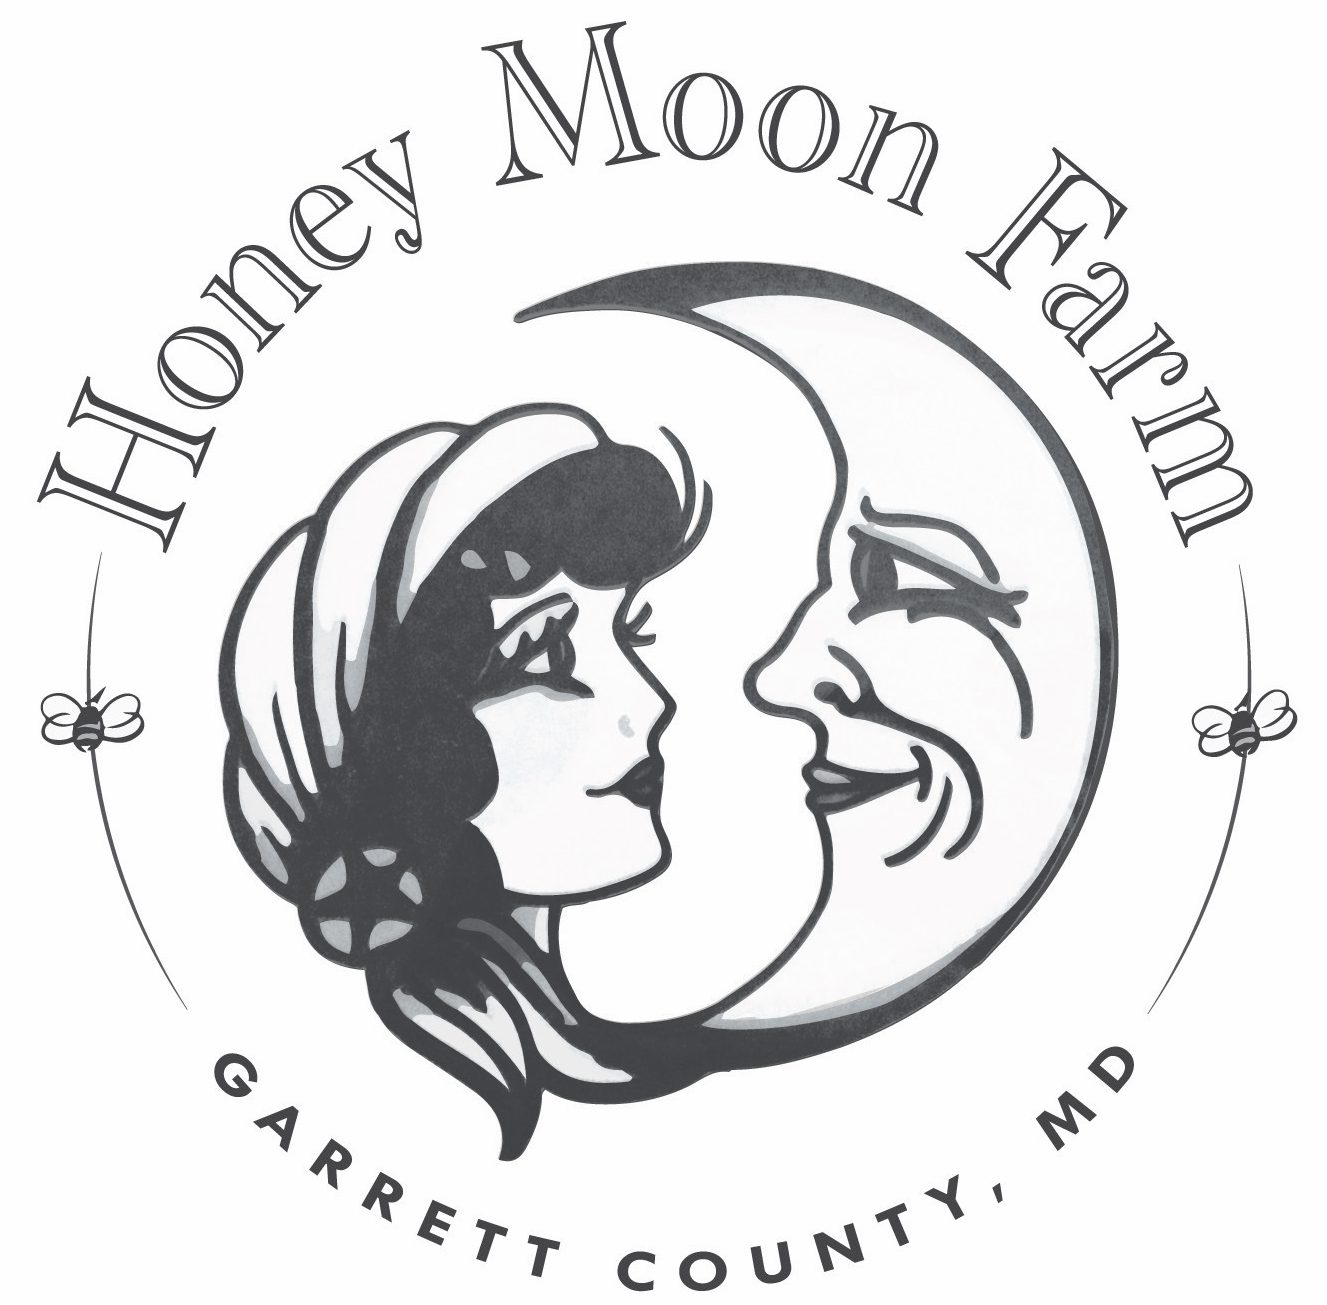 Honey Moon Farm